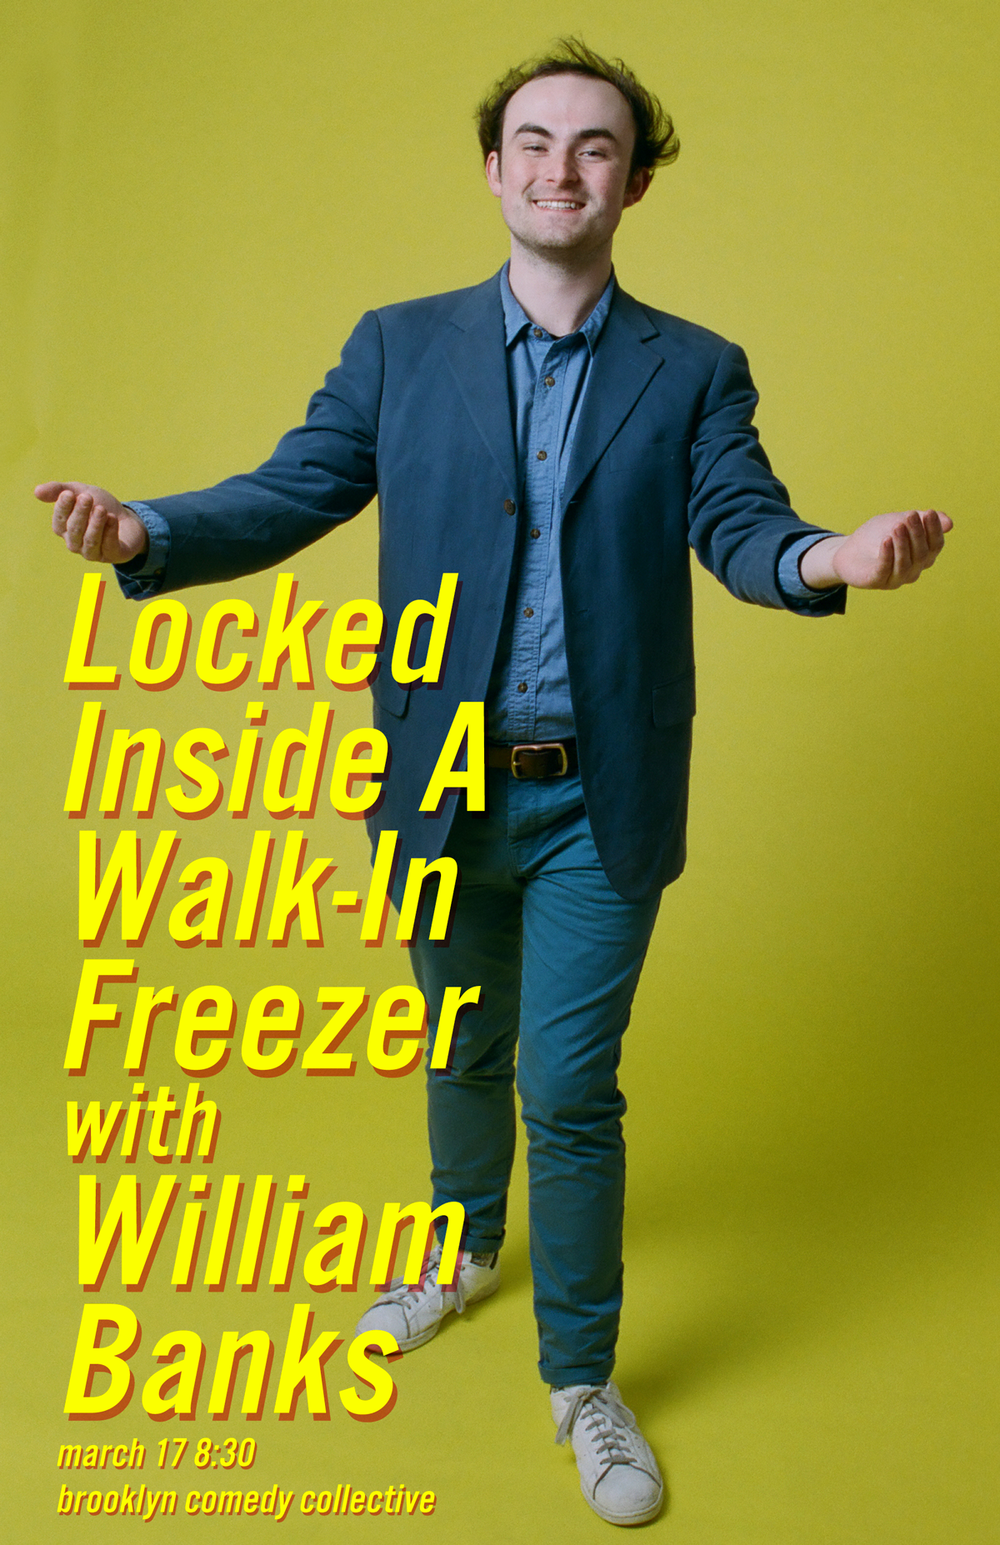 - LOCKED INSIDE A WALK-IN FREEZER WITH WILLIAM BANKSOn October 14th, 2018, William Banks was locked inside of a walk-in freezer for 45 minutes. This made him very sad for weeks. Join William on a journey through the freezer and discover how having fun is the only way to stay warm! You will not freeze to death, but you will laugh to death :-)